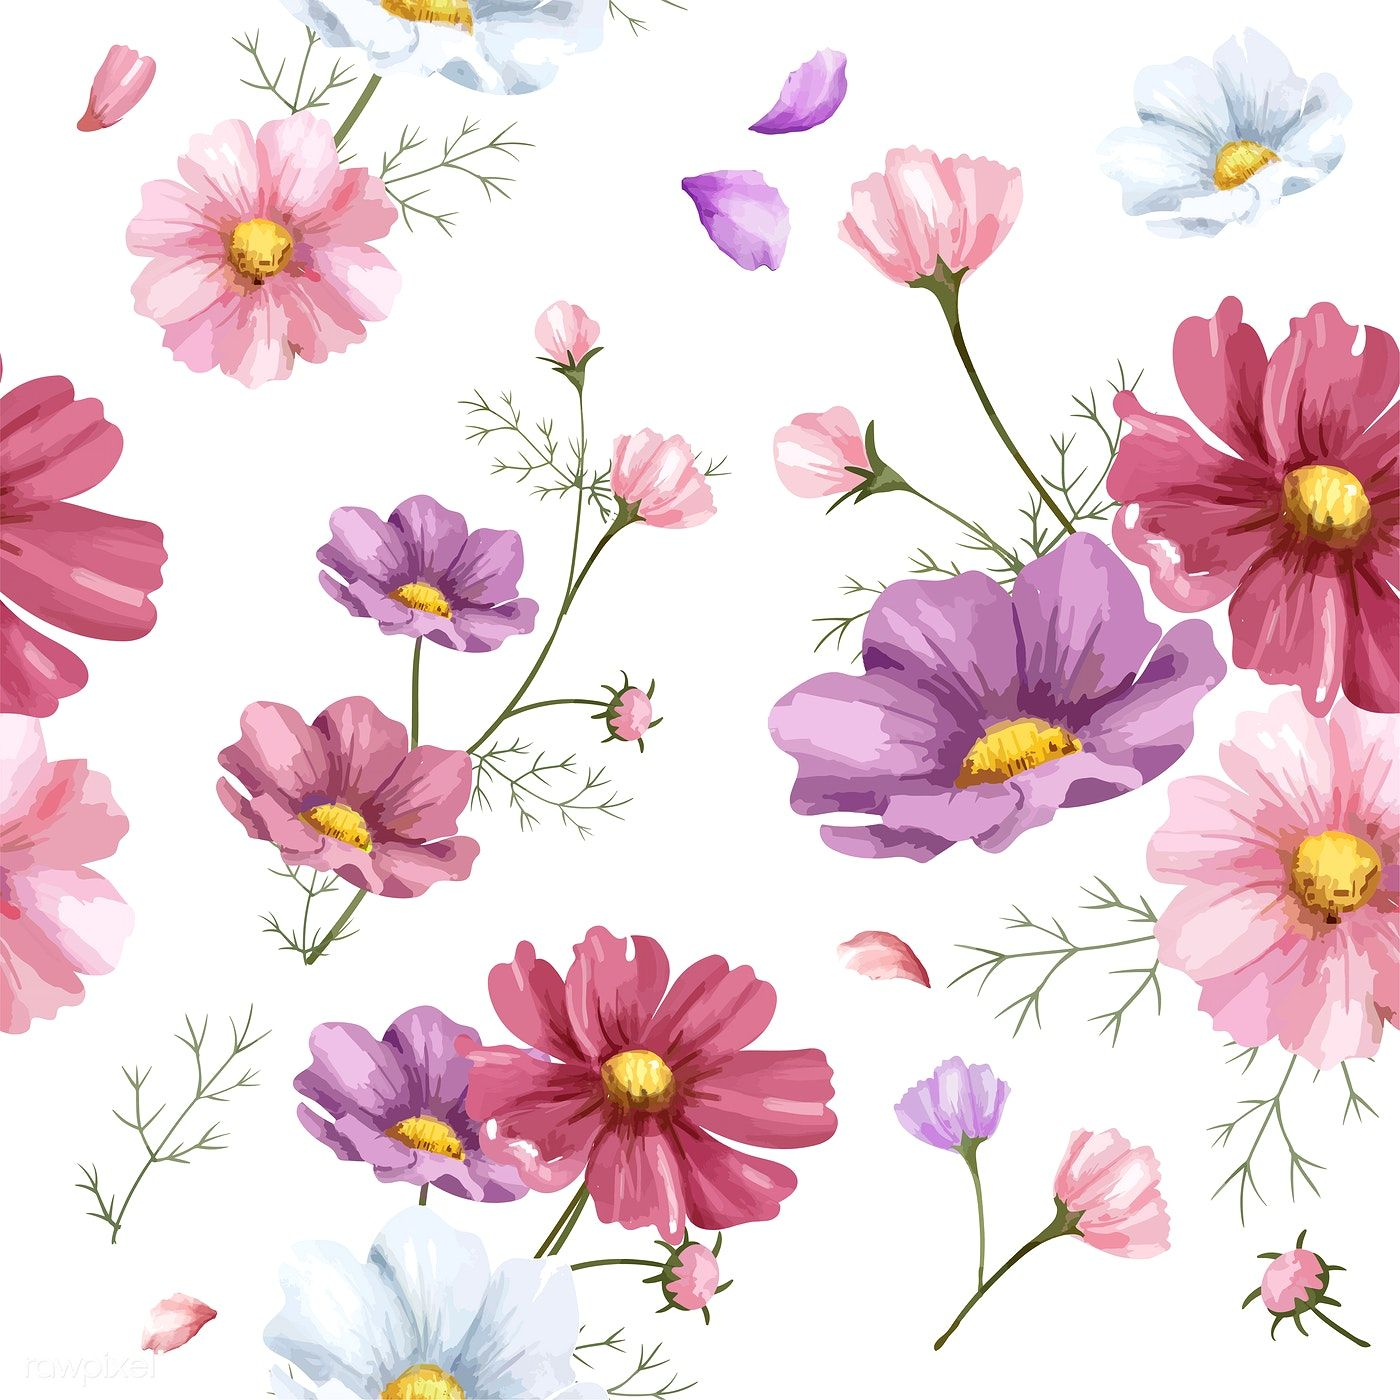 Download Premium Vector Of Hand Drawn Cosmos Flower Pattern 421496 How To Draw Hands Flower Illustration Watercolor Flower Vector